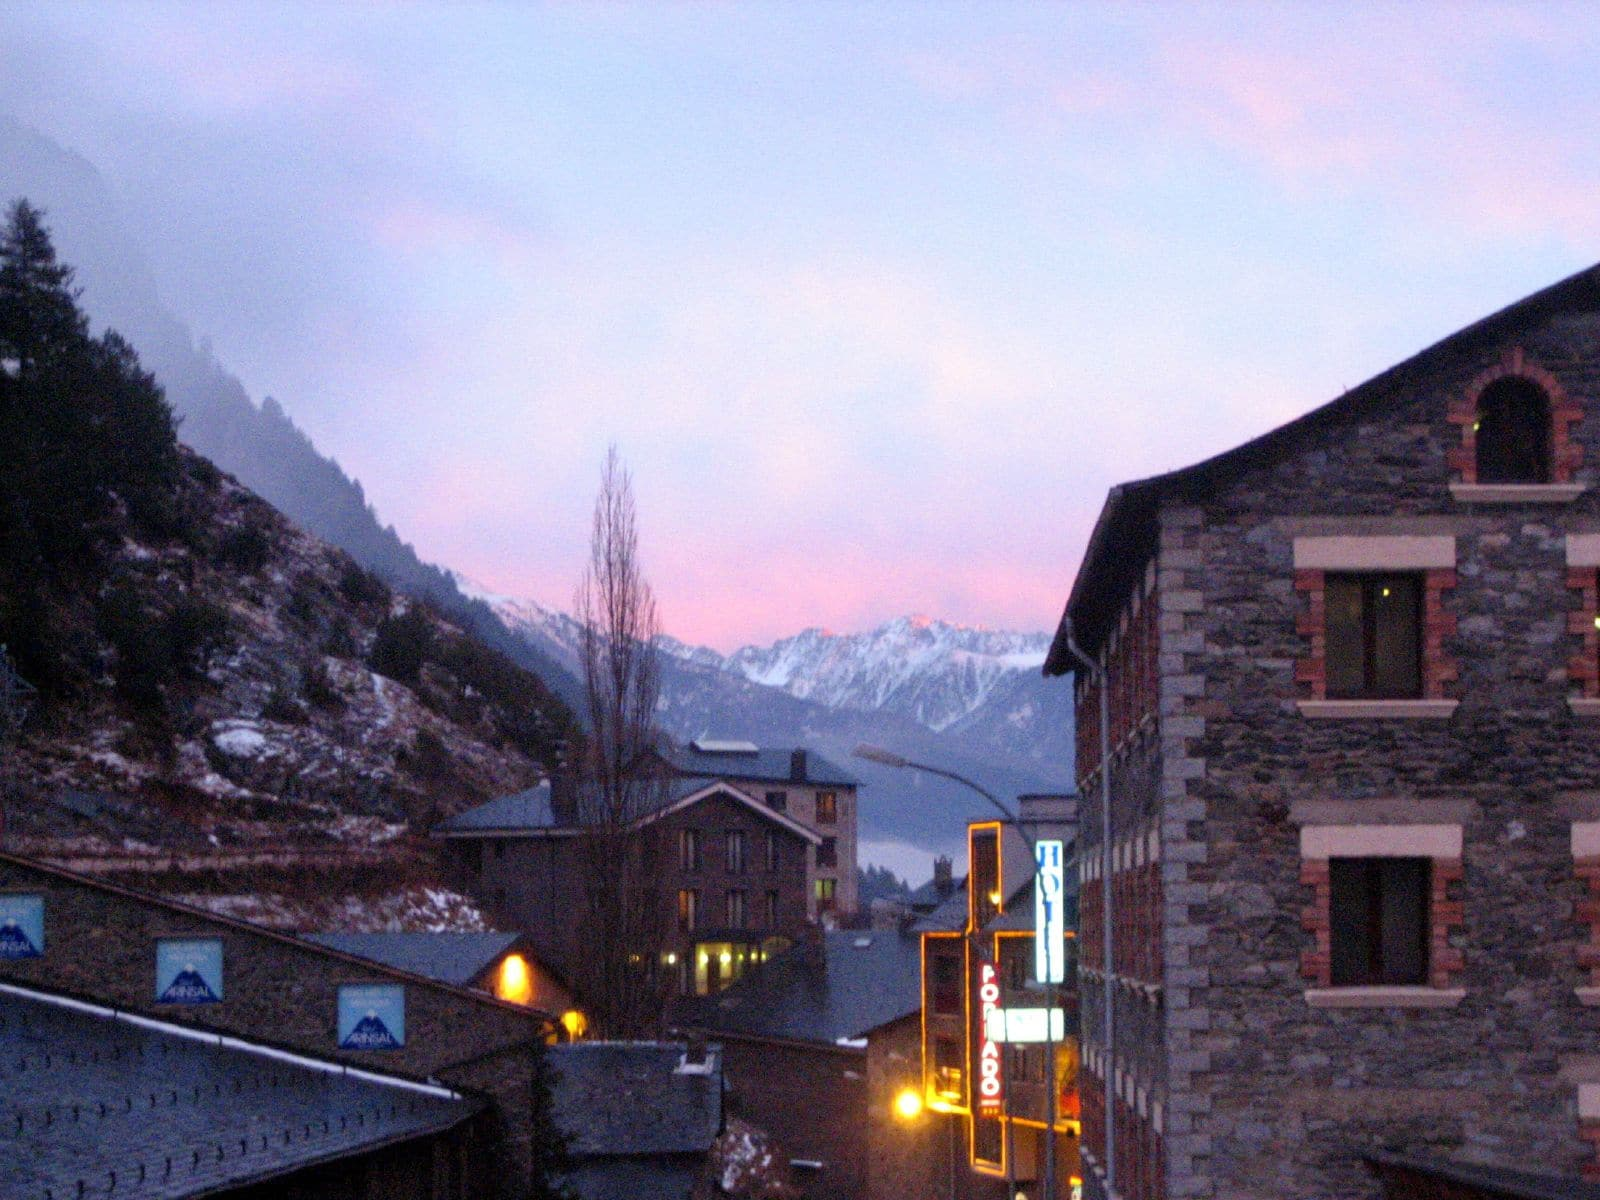 At night in Arinsal neon highlights mix with the traditional architecture.